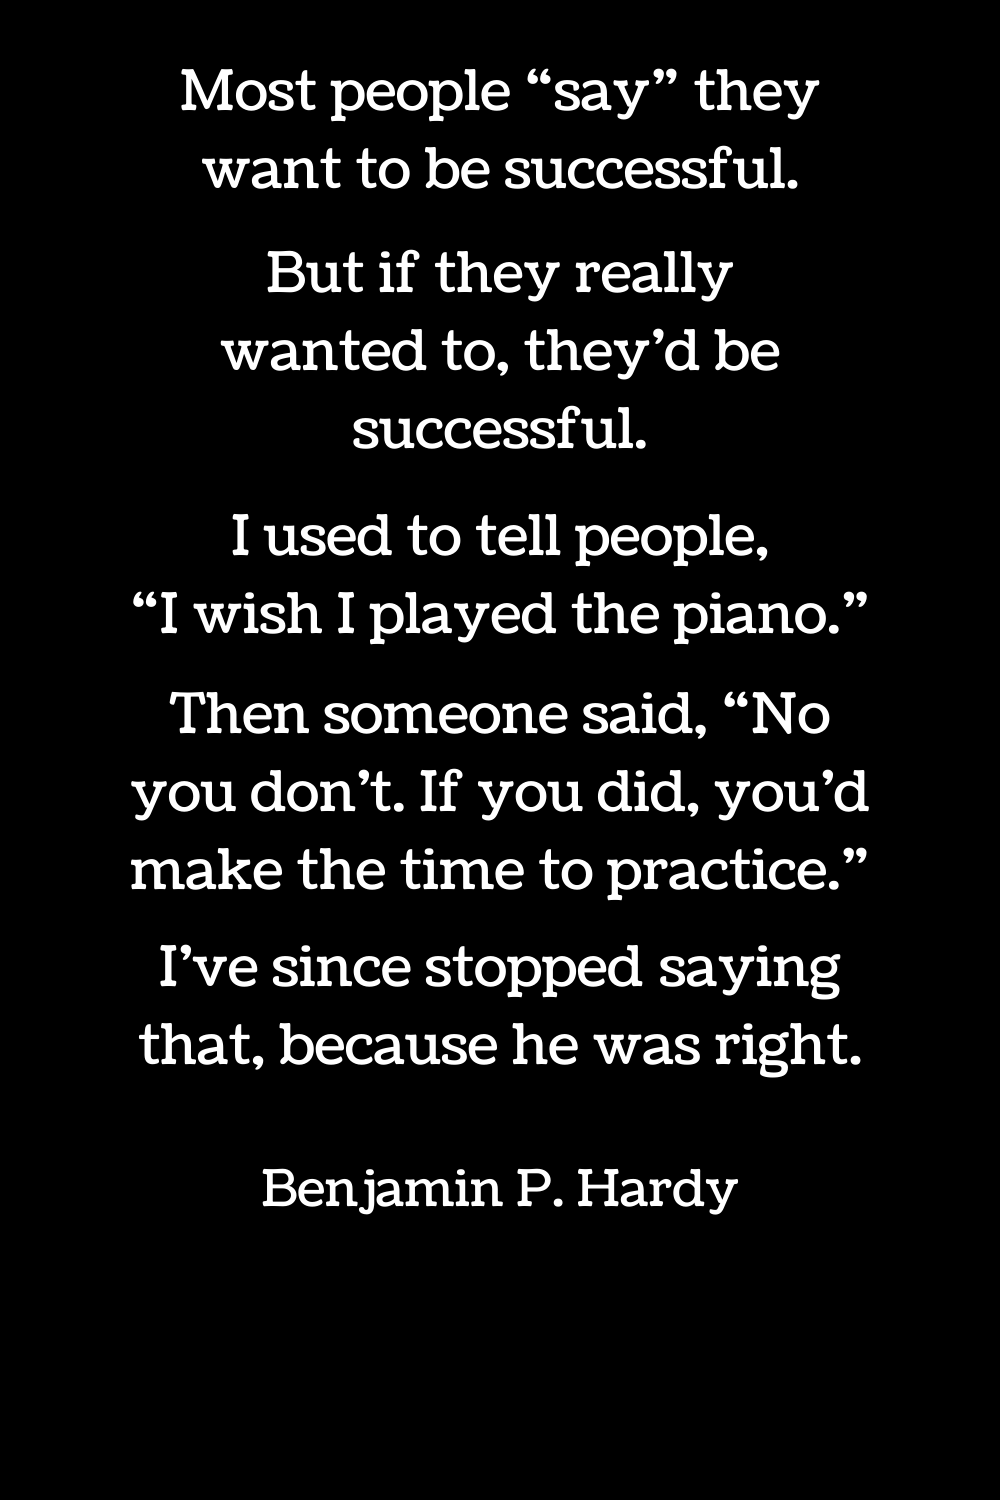 Benjamin P. Hardy quotes